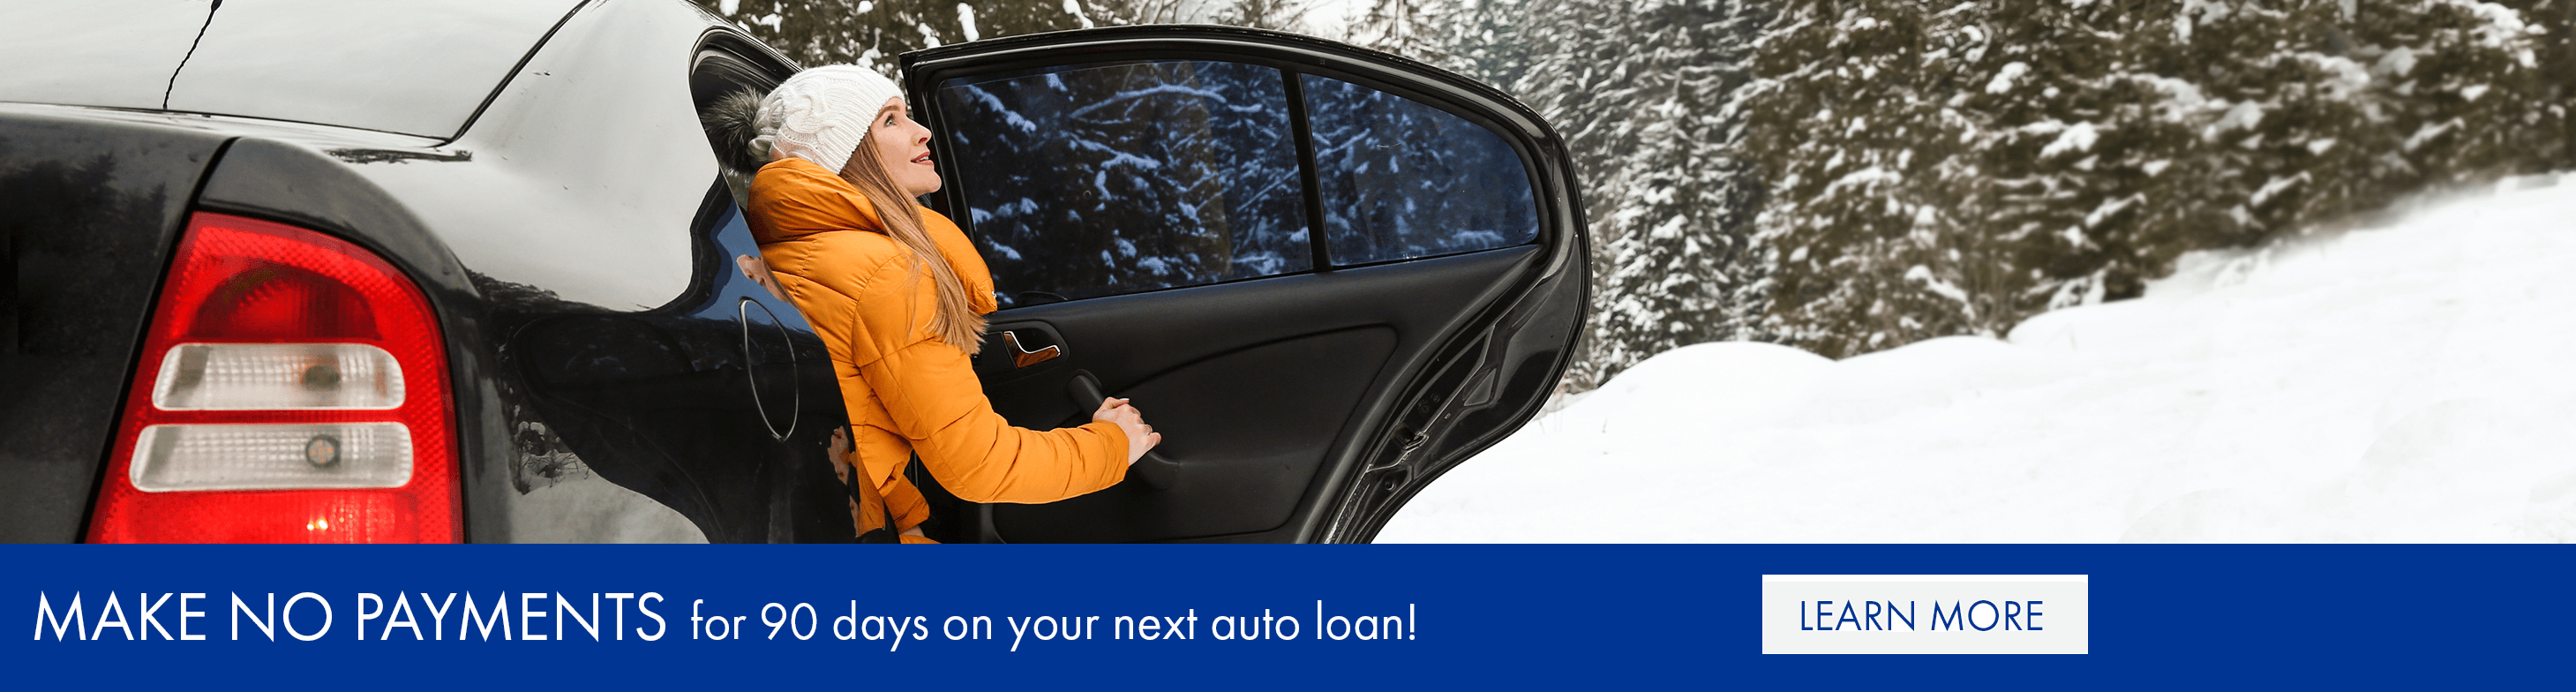 Make no payments for 90 days on your next auto loan!